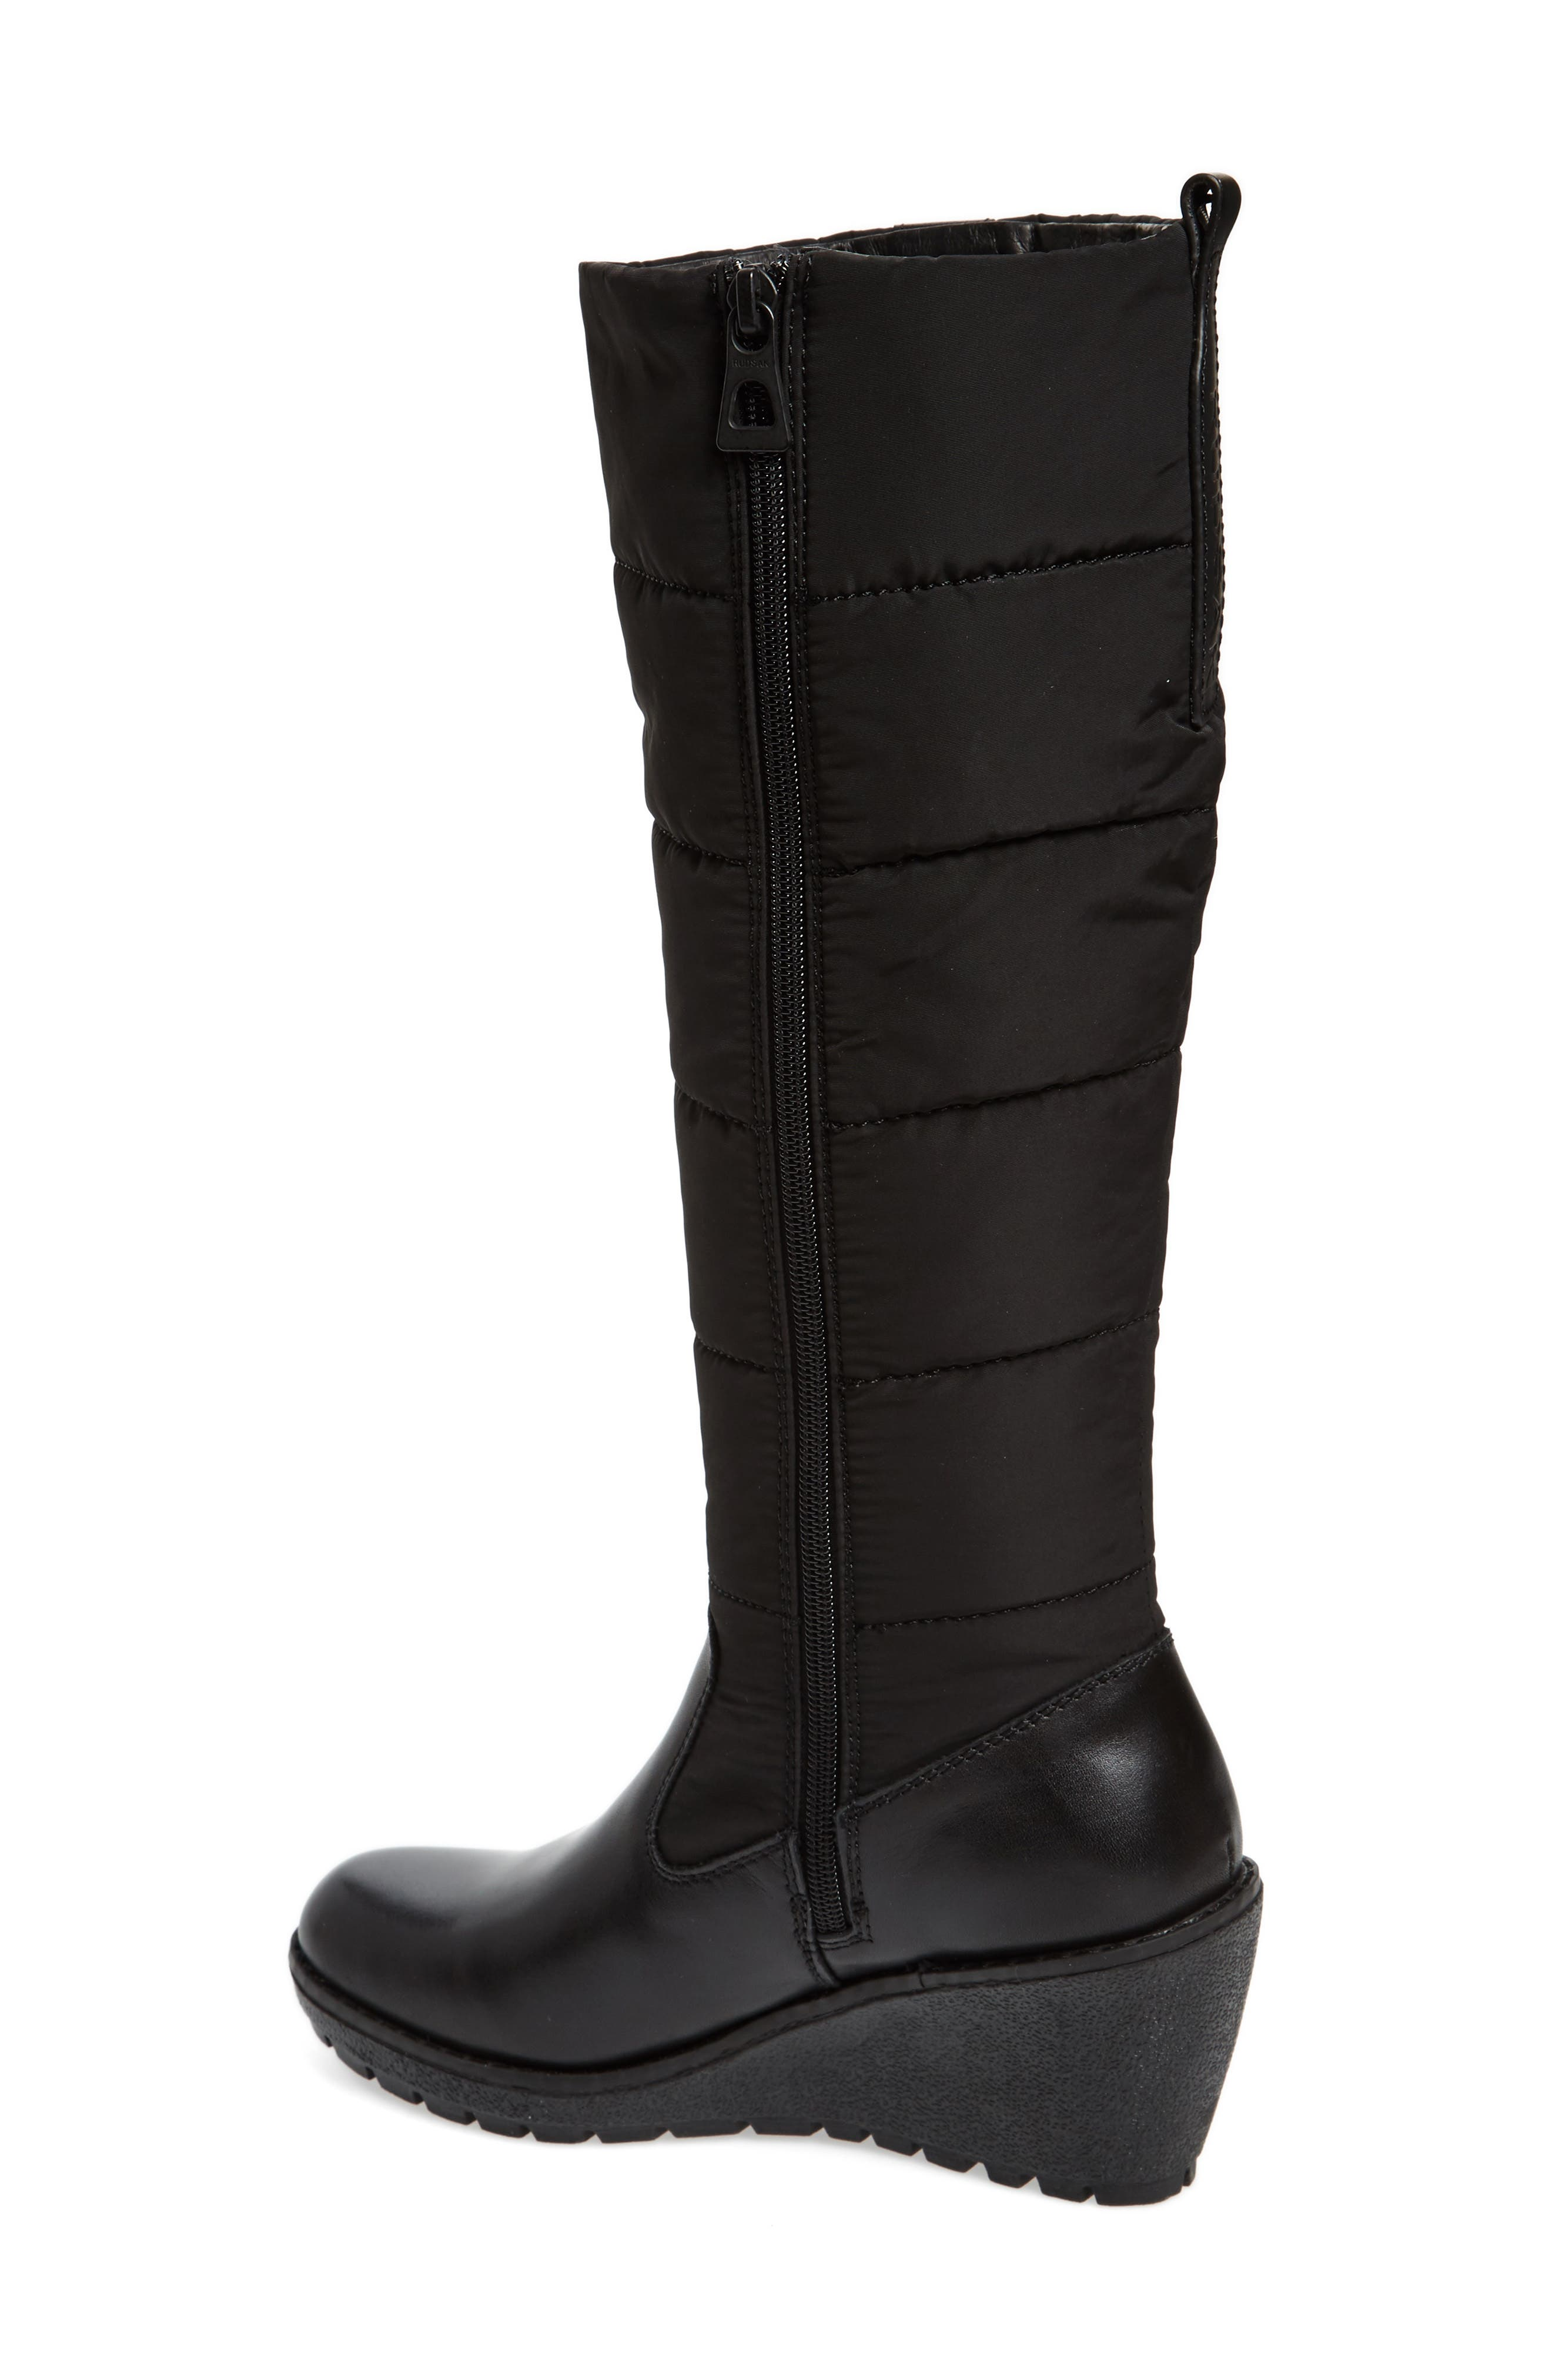 Bethany Water Resistant Boot,                             Alternate thumbnail 2, color,                             Black Leather